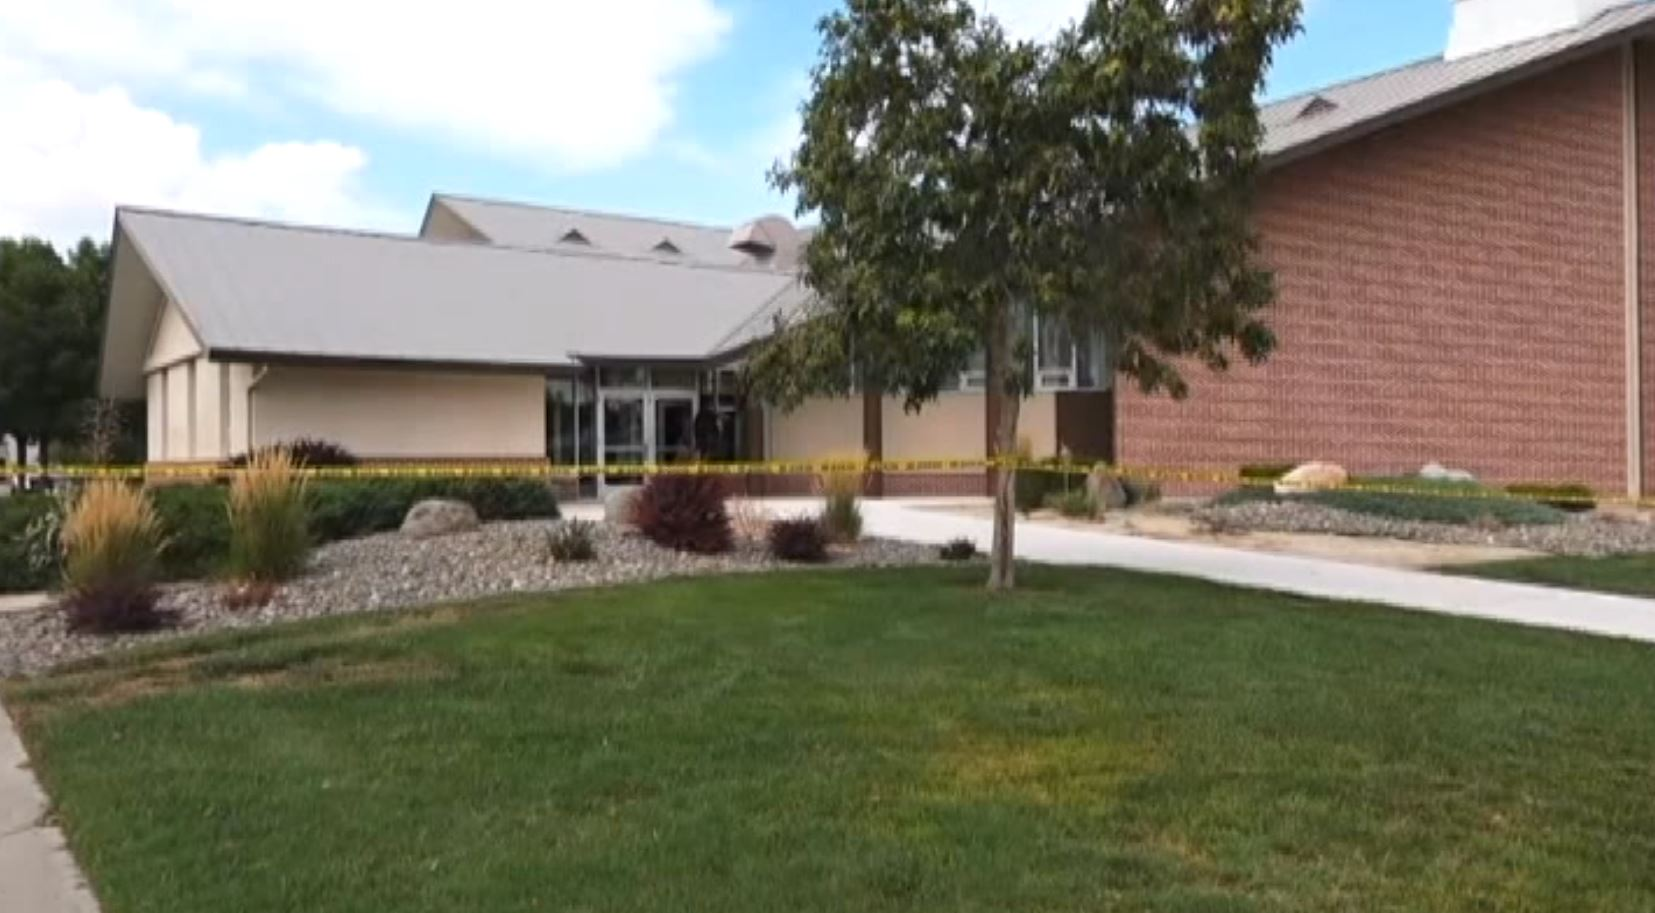 A shooting at The Church of Jesus Christ of Latter-day Saints in Fallon, Nevada, occurred Sunday afternoon. (Photo: CNN Newsource / screen grab)<p></p>